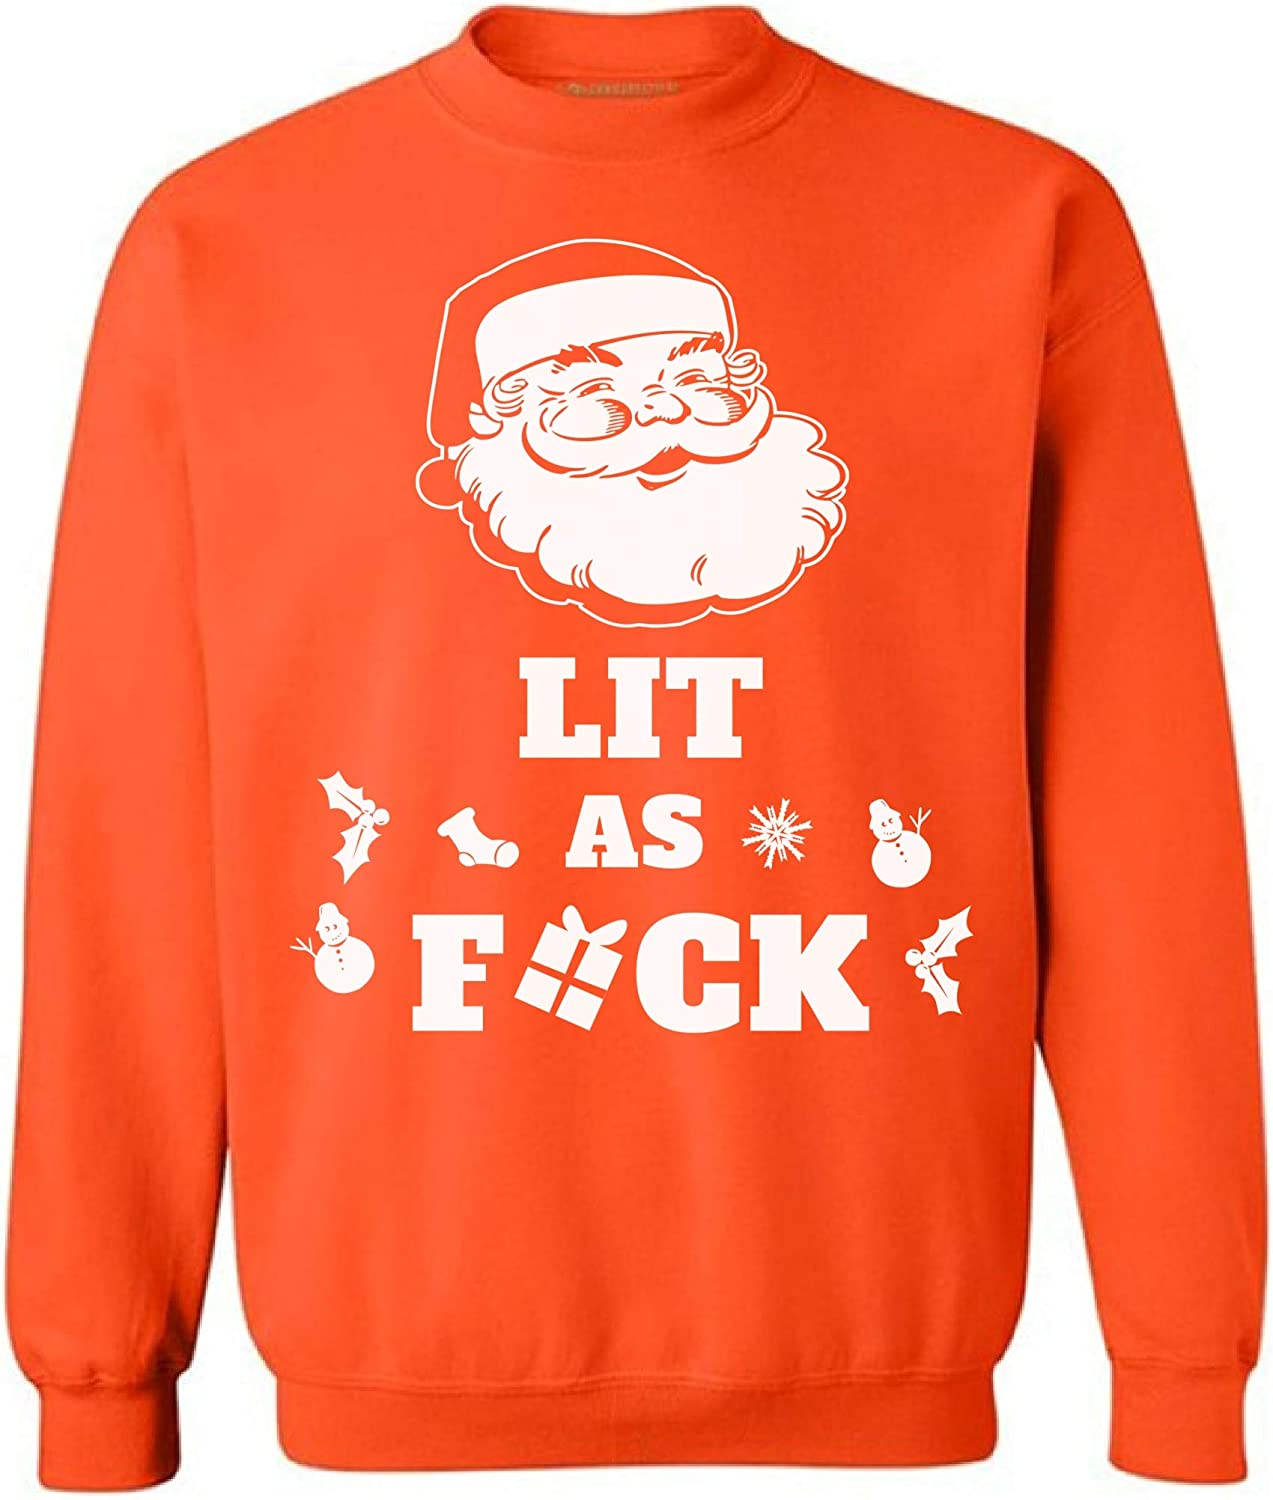 Awkward Styles Lit As Fuck Sweatshirt Funny Santa Gifts Ugly Christmas Sweater